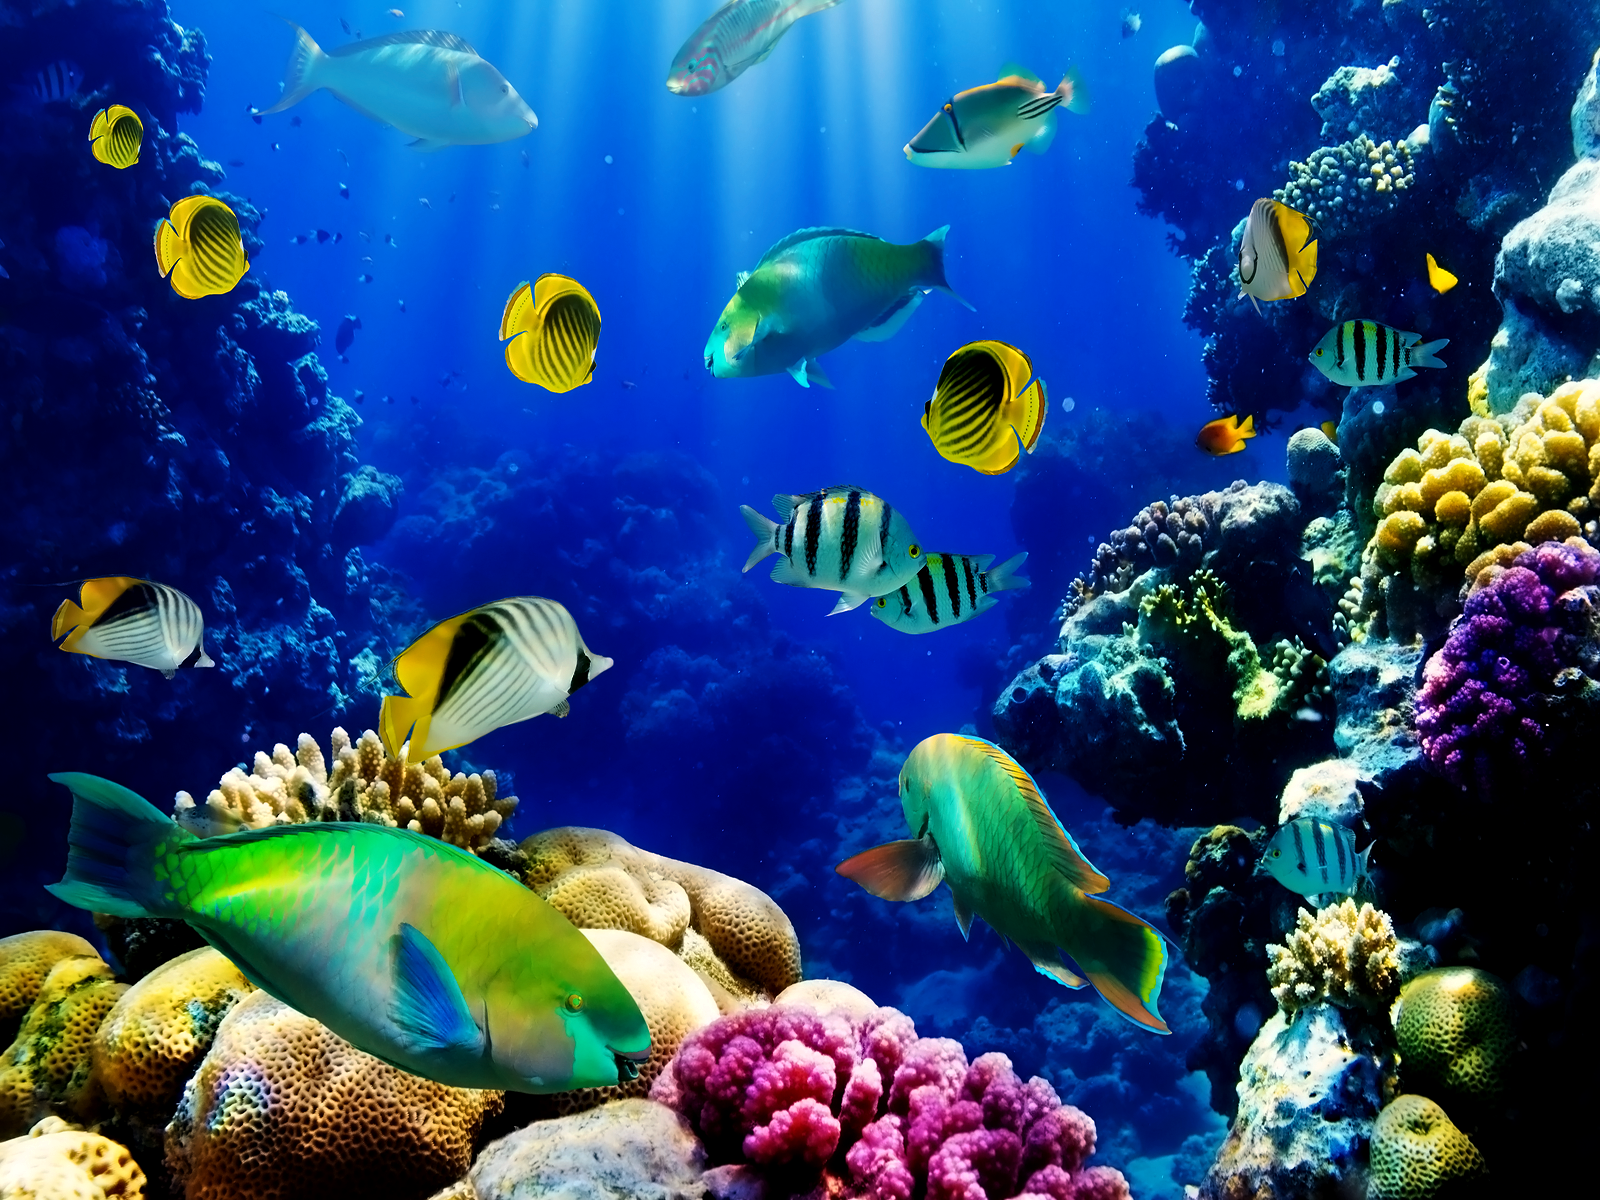 Aquarium fish tank download - Live Aquarium Wallpaper Picswallpaper Com